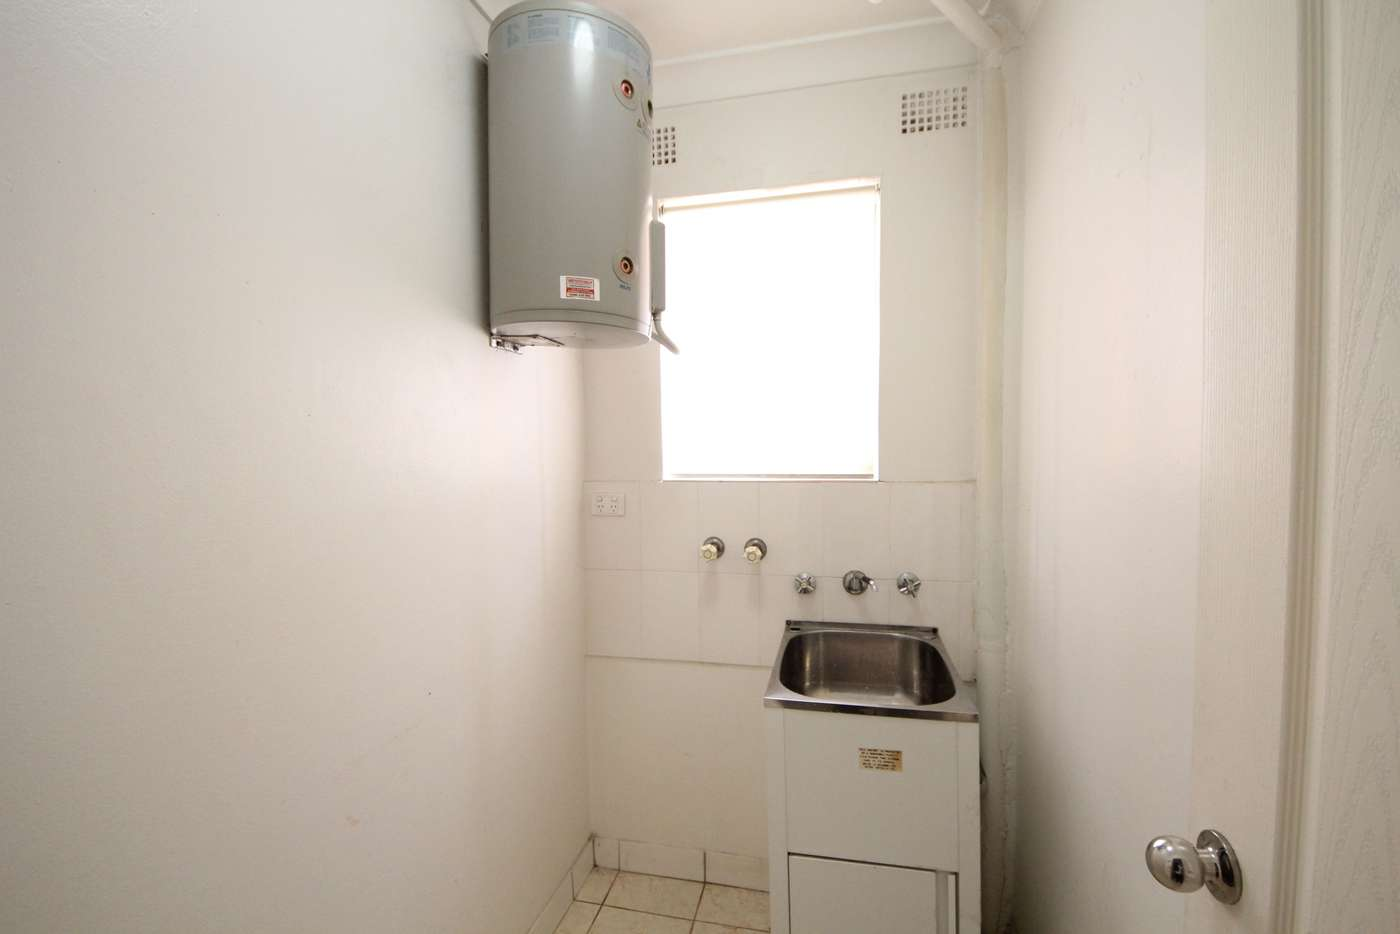 Sixth view of Homely apartment listing, 4/60 MacDonald Street, Lakemba NSW 2195